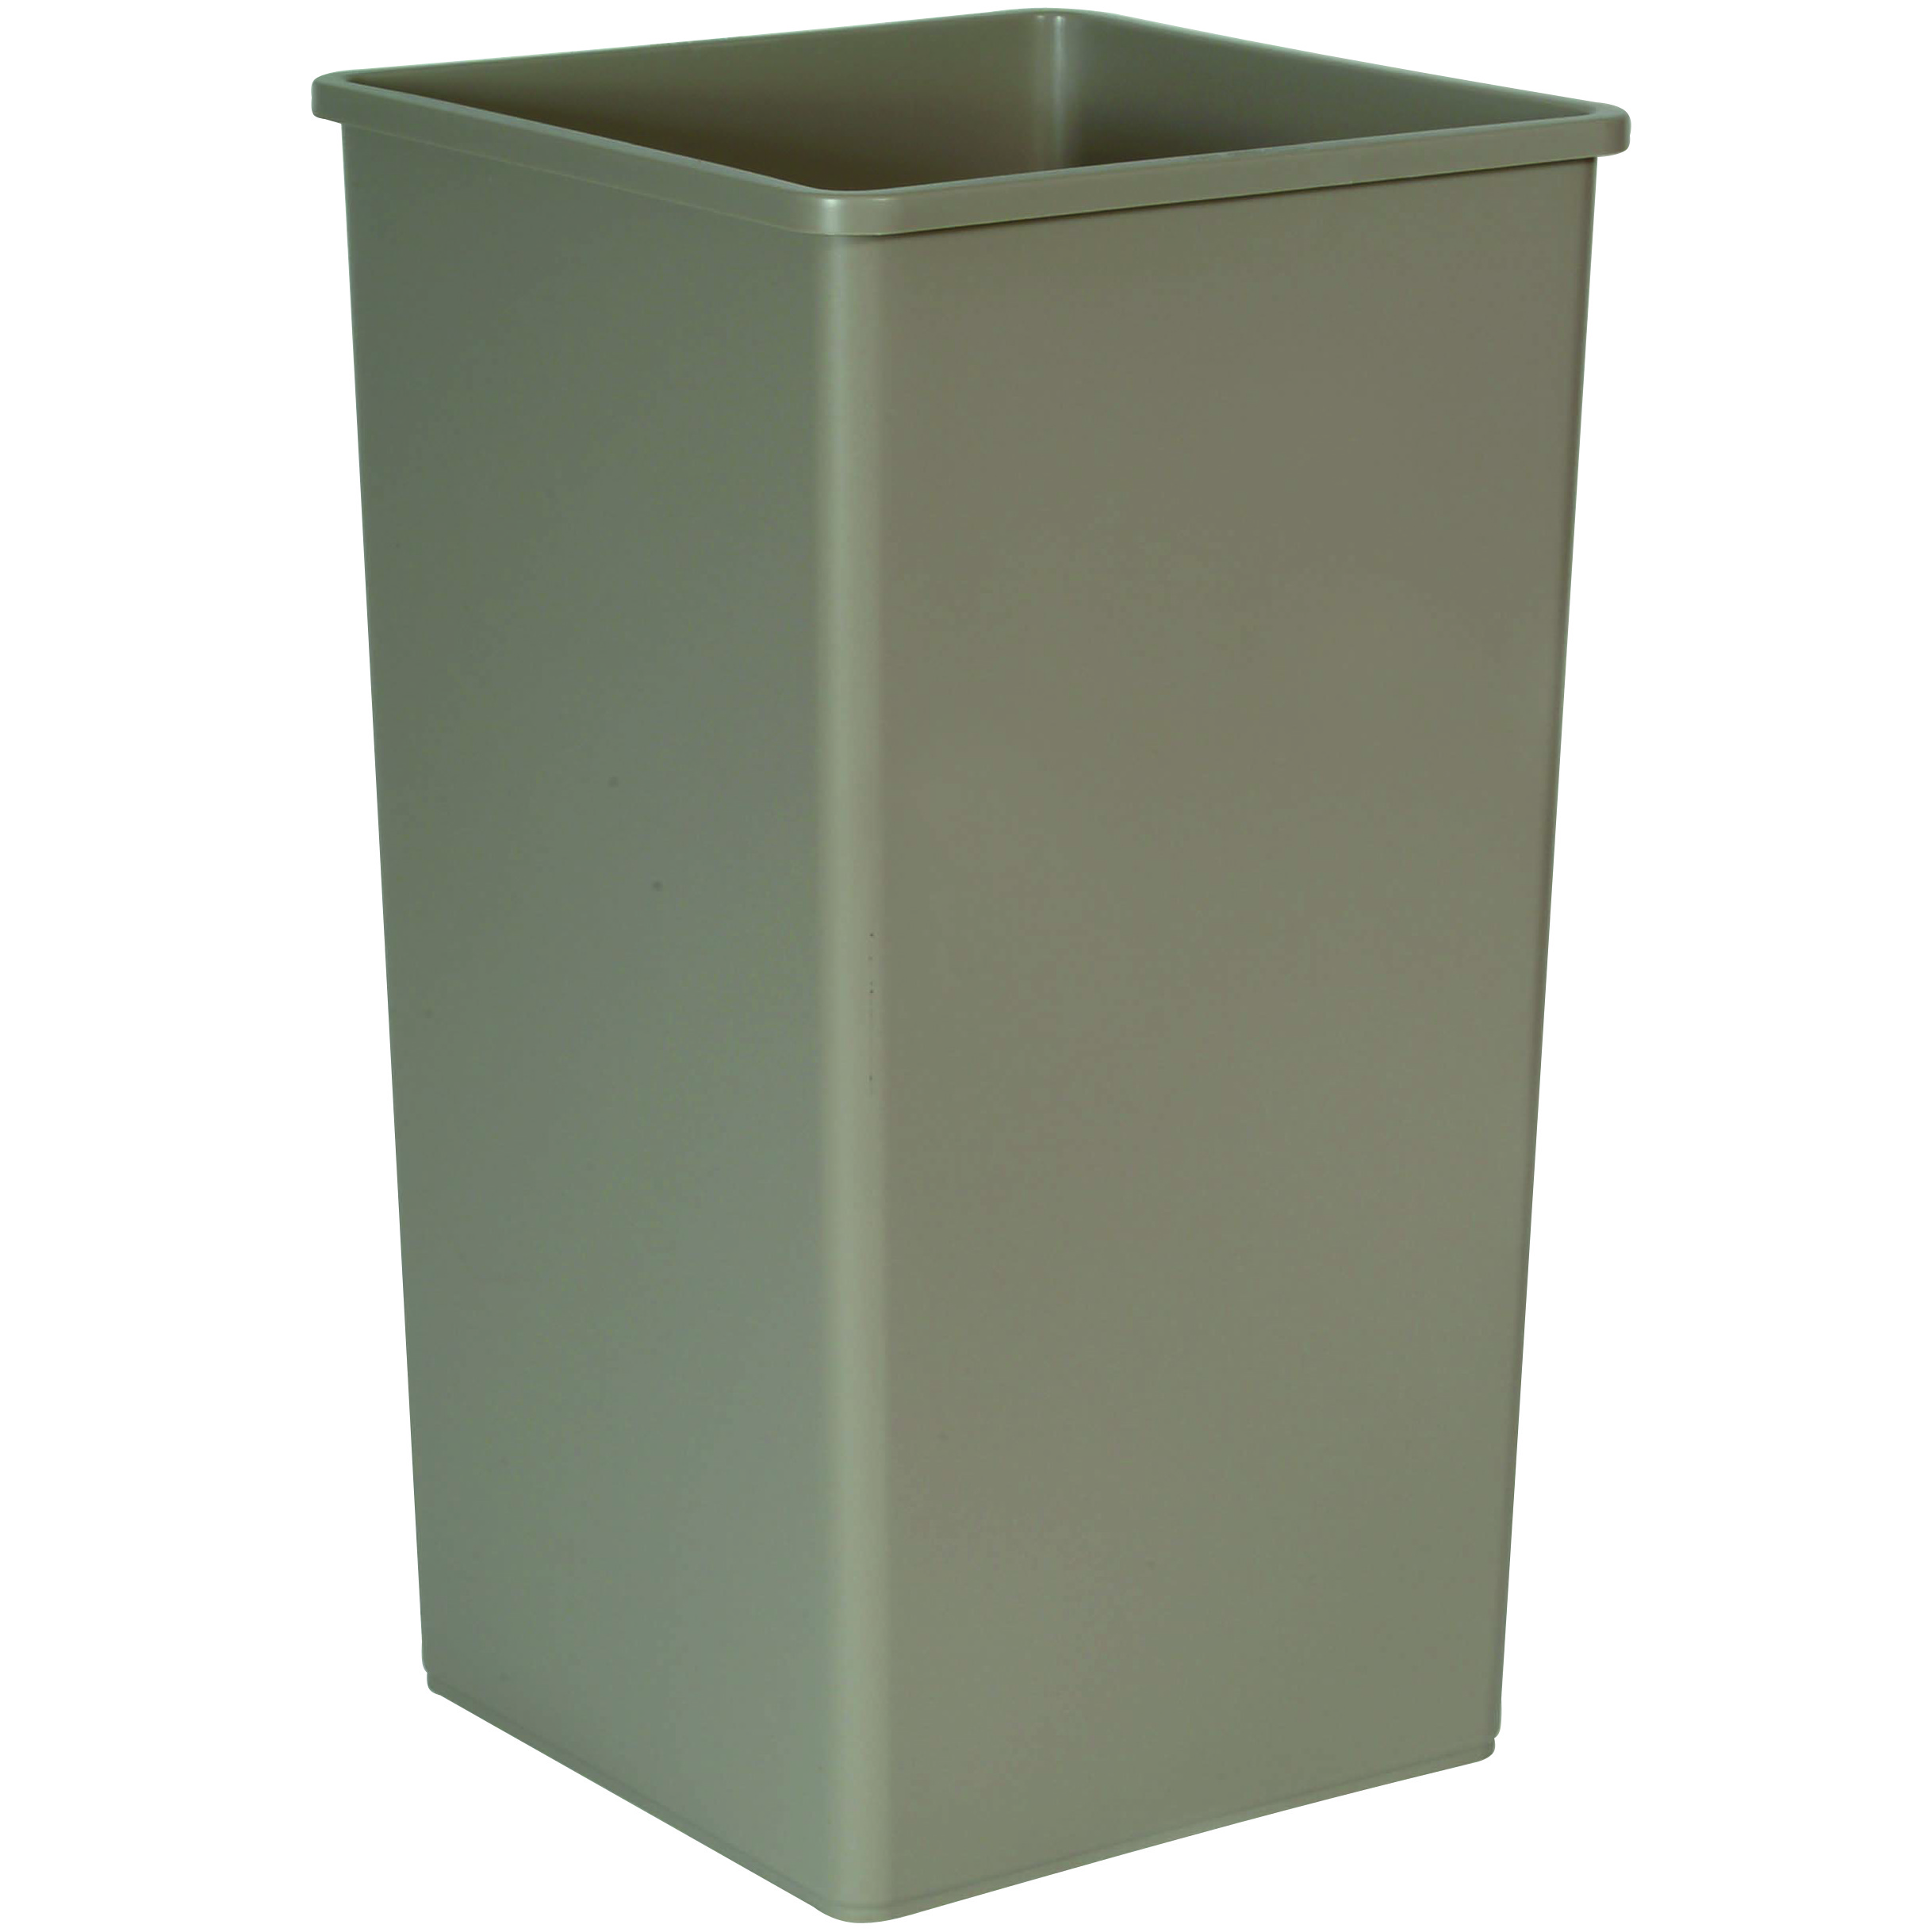 rubbermaid untouchable square recycling bin trash can 50 gallon gray recycle away. Black Bedroom Furniture Sets. Home Design Ideas